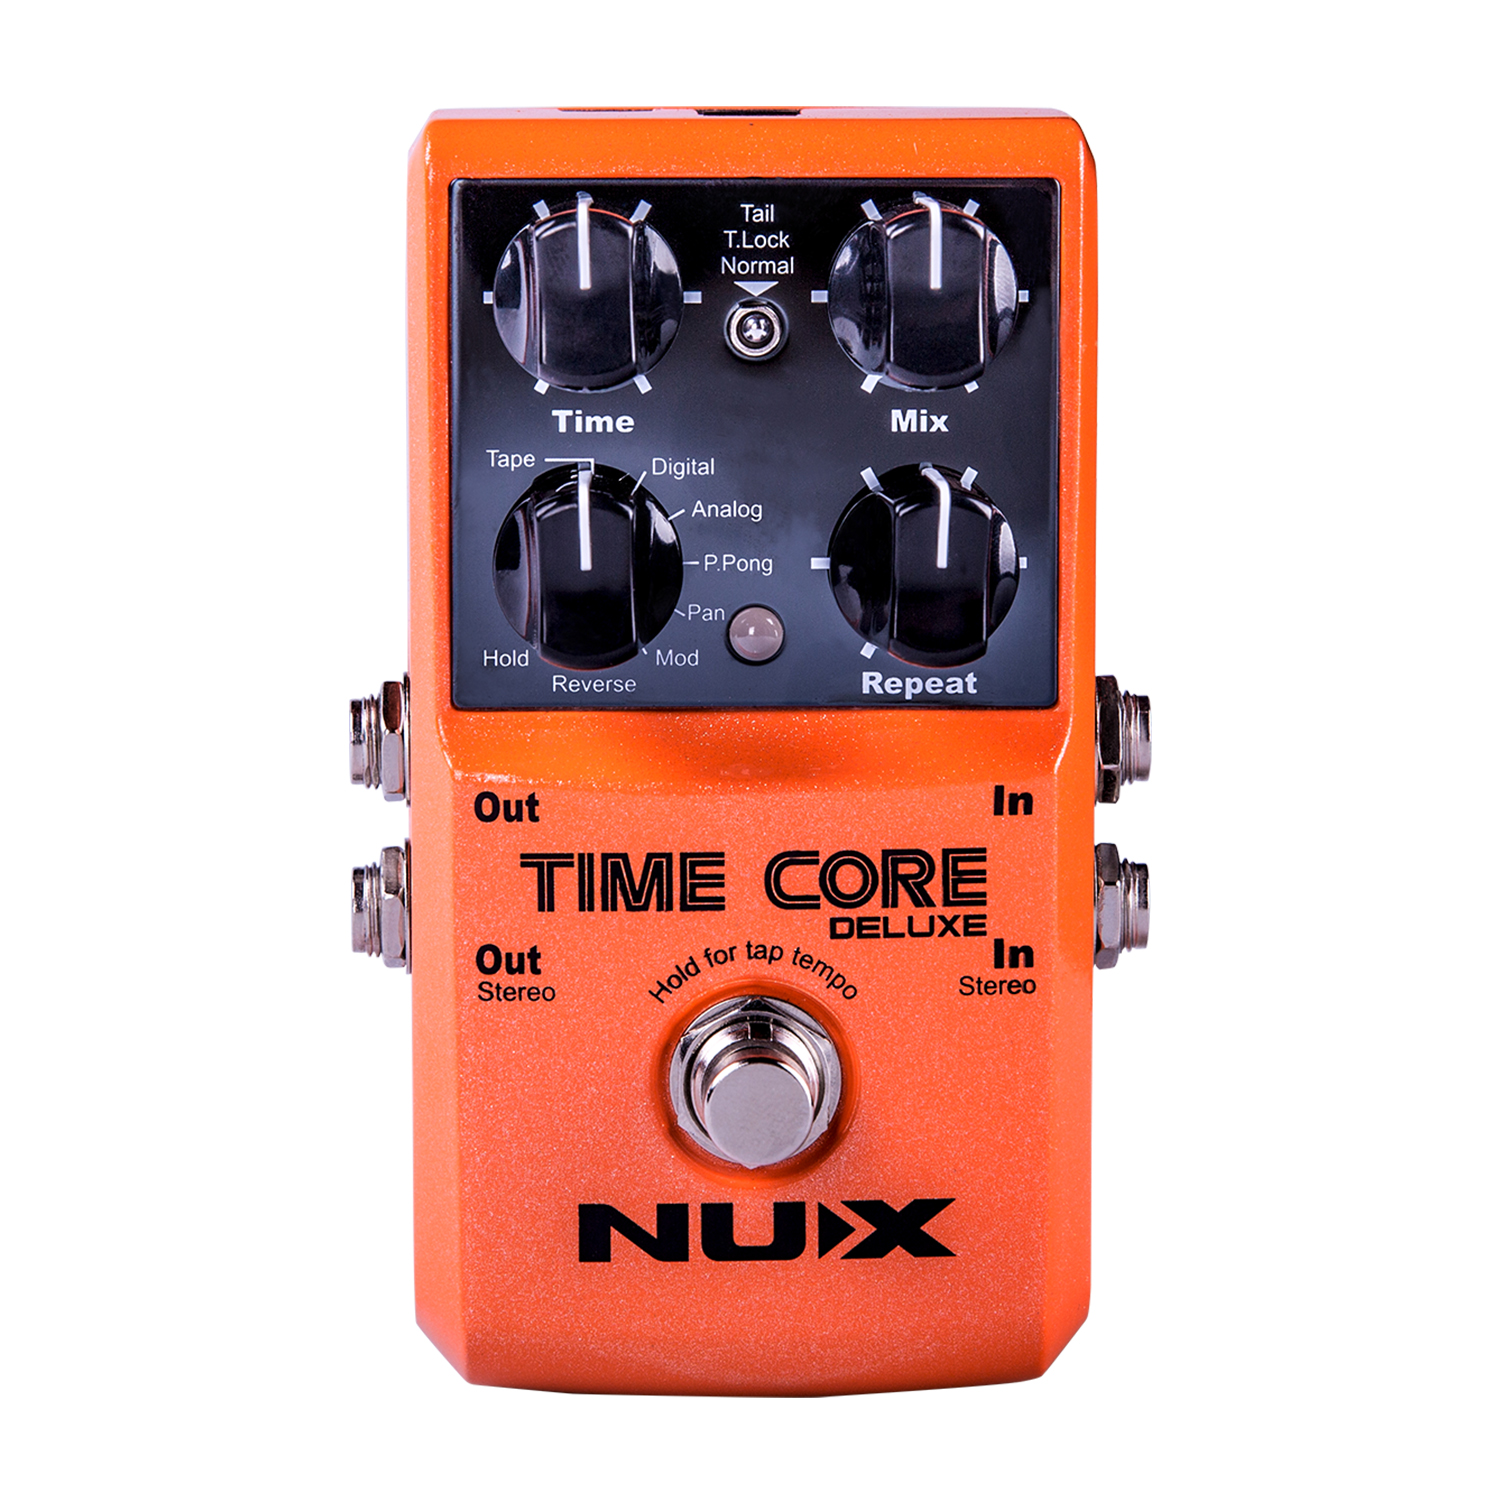 NUX Time Core Deluxe Delay Guitar Effect Pedal TSAC Technology Incredible Ambient True Bypass Tone Lock Crystal Clear nux time core deluxe delay pedal different types of delays to the upmost ambience